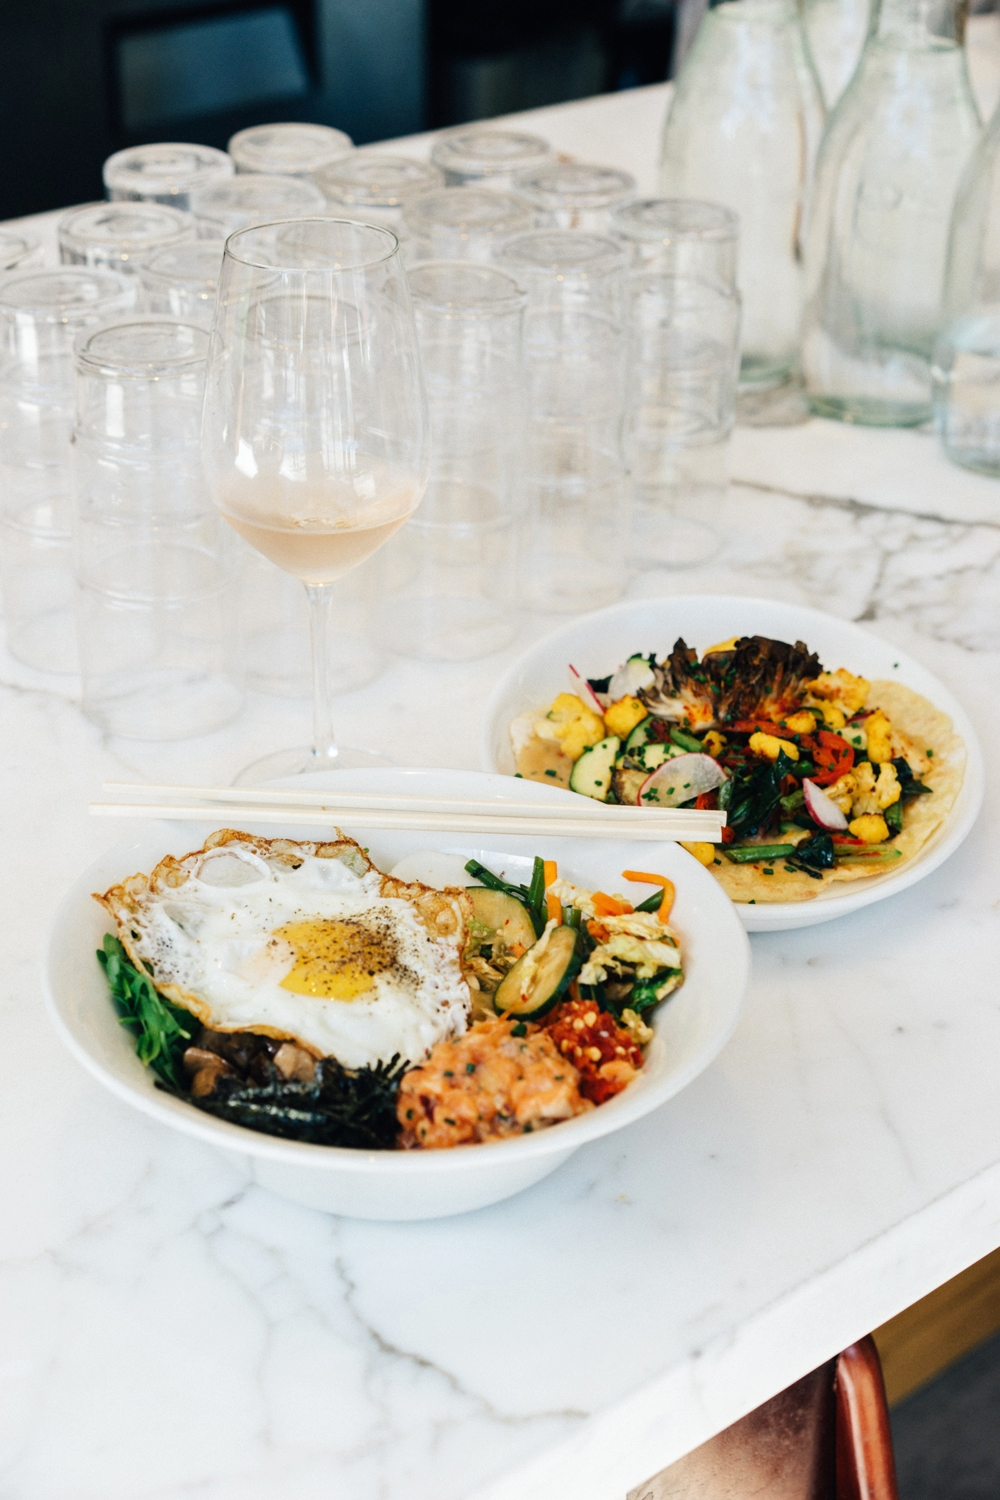 Bibimbap - Spring vegetables, brown rice, chili garlic sauce, fried egg   Field Greens Flatbread  - seasonal harvest, almond-onion puree